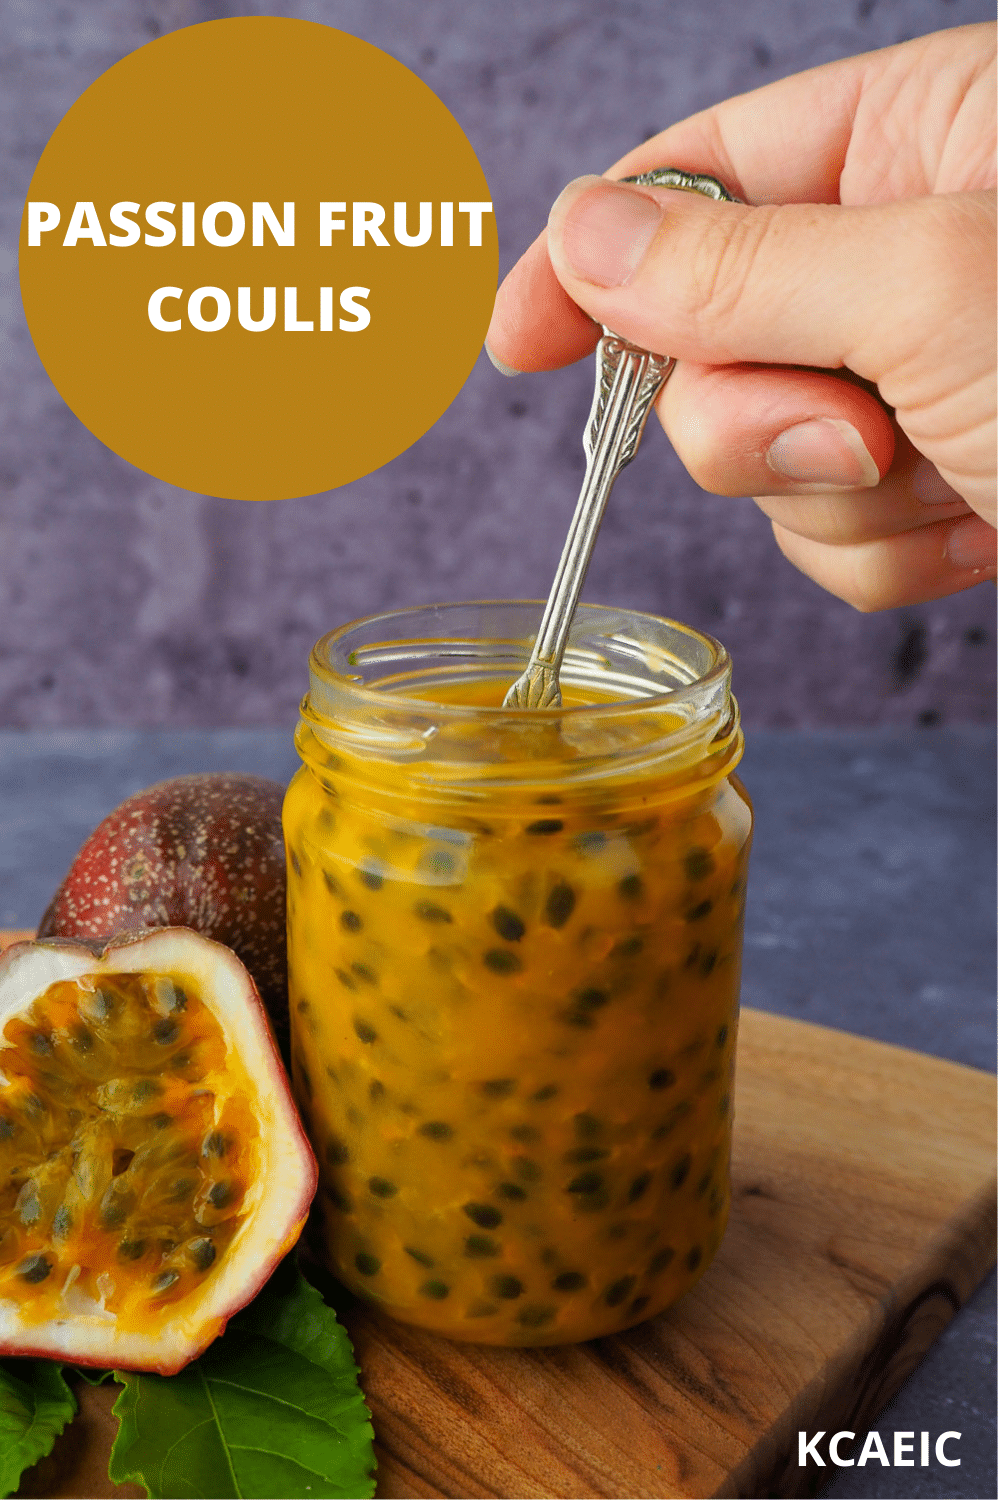 Passion fruit coulis in an glass jar a hand holding a vintage spoon in the jar and fresh, cut open passion fruit and passion fruit leaves on the side, on a wooden chopping board, with text overlay Passion fruit coulis, KCAEIC